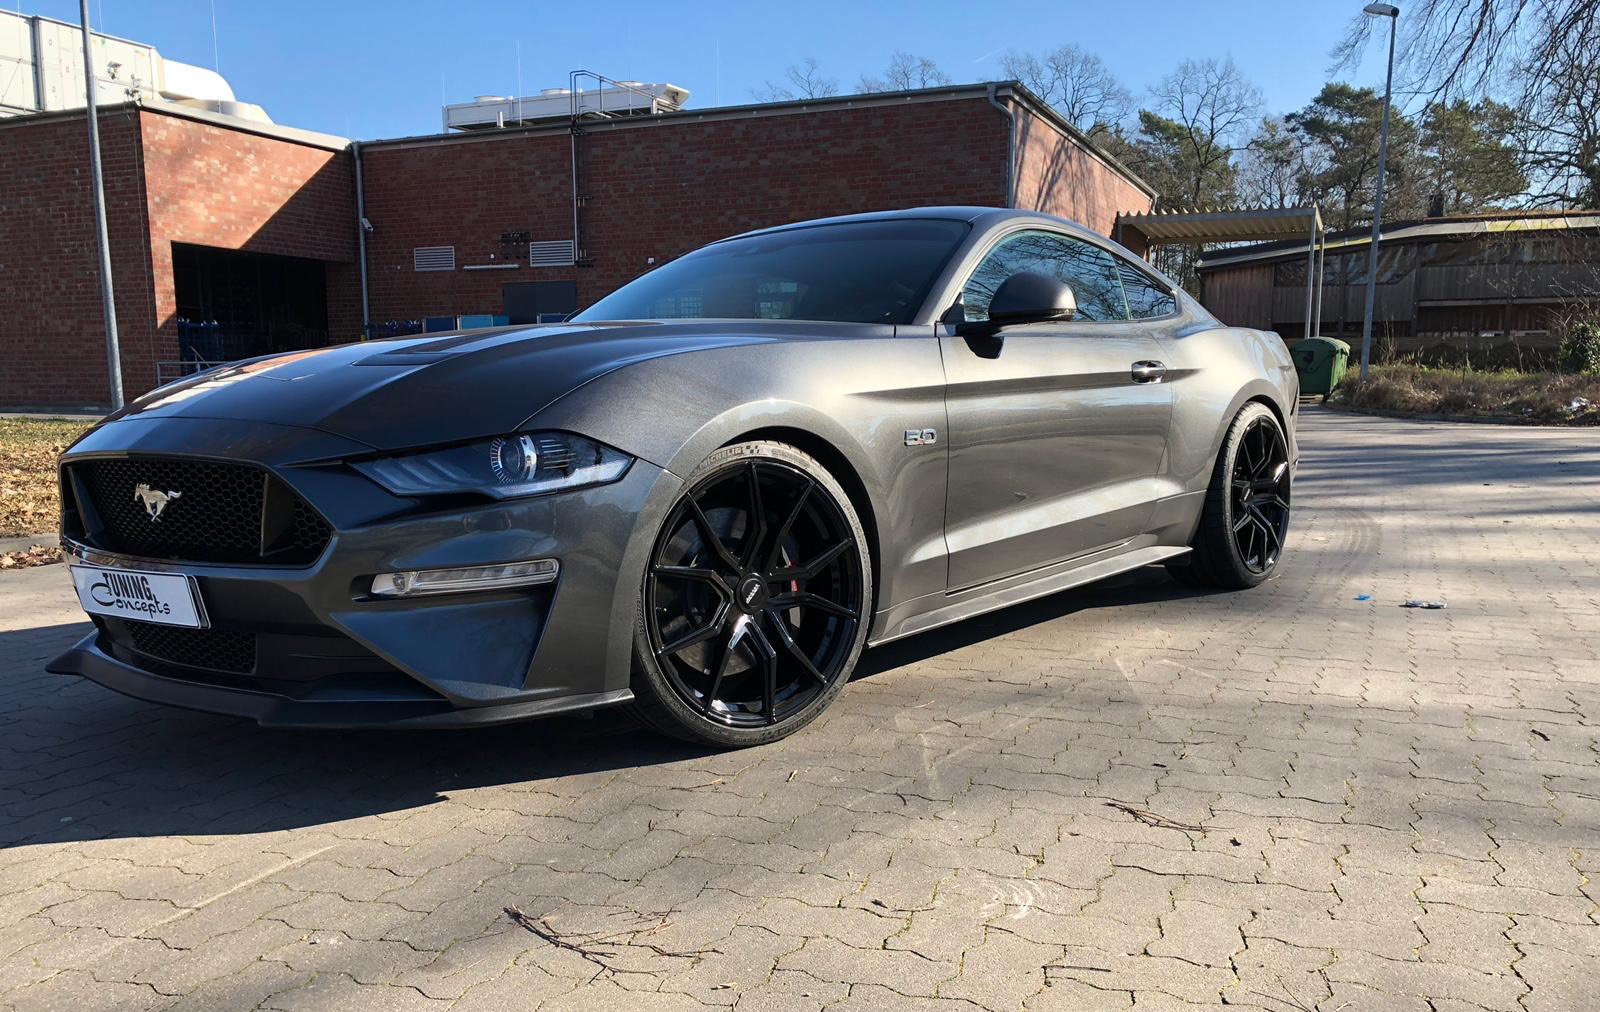 Ford Mustang Black Rims Varro VD19 Concave Wheels